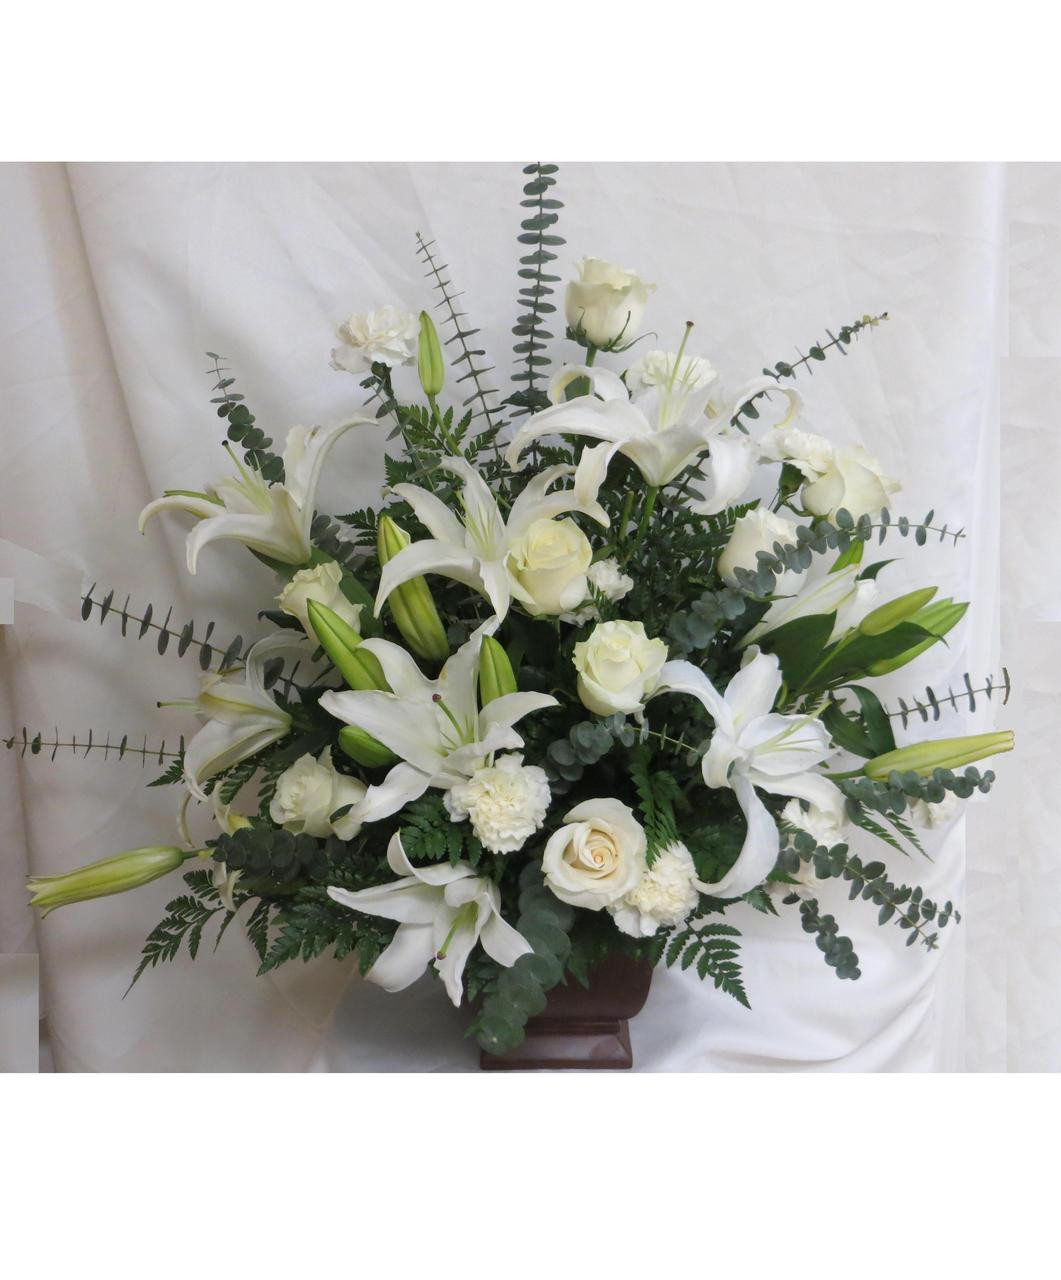 Best white flowers funeral flower arrangements white flowers funeral flower arrangements the flowers are very beautiful here we provide a collections of various pictures of beautiful flowers charming izmirmasajfo